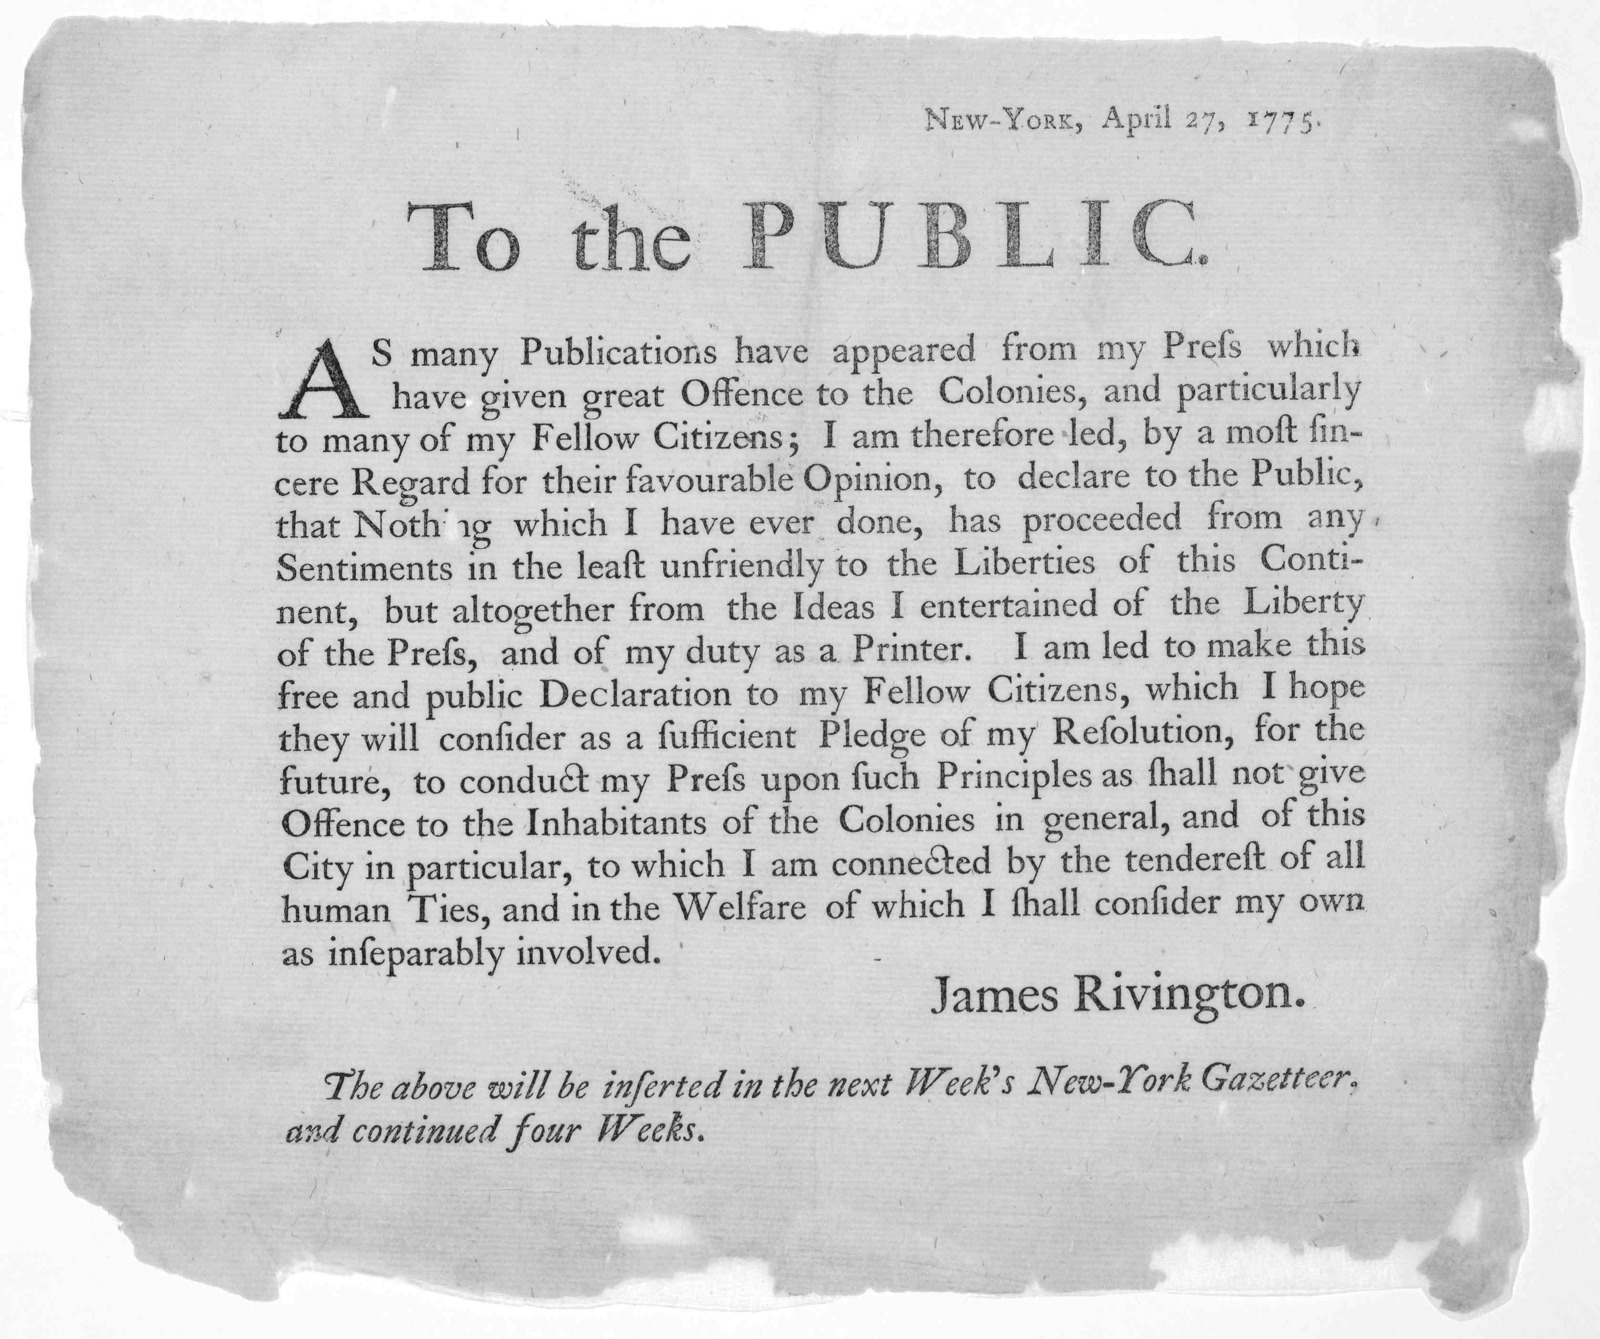 New-York, April 27, 1775. To the public. As many publications have appeared from my press which have given offense to the colonies, and particularly to many of my fellow citizens, I am therefore led, by a most sincere regard for their favourable